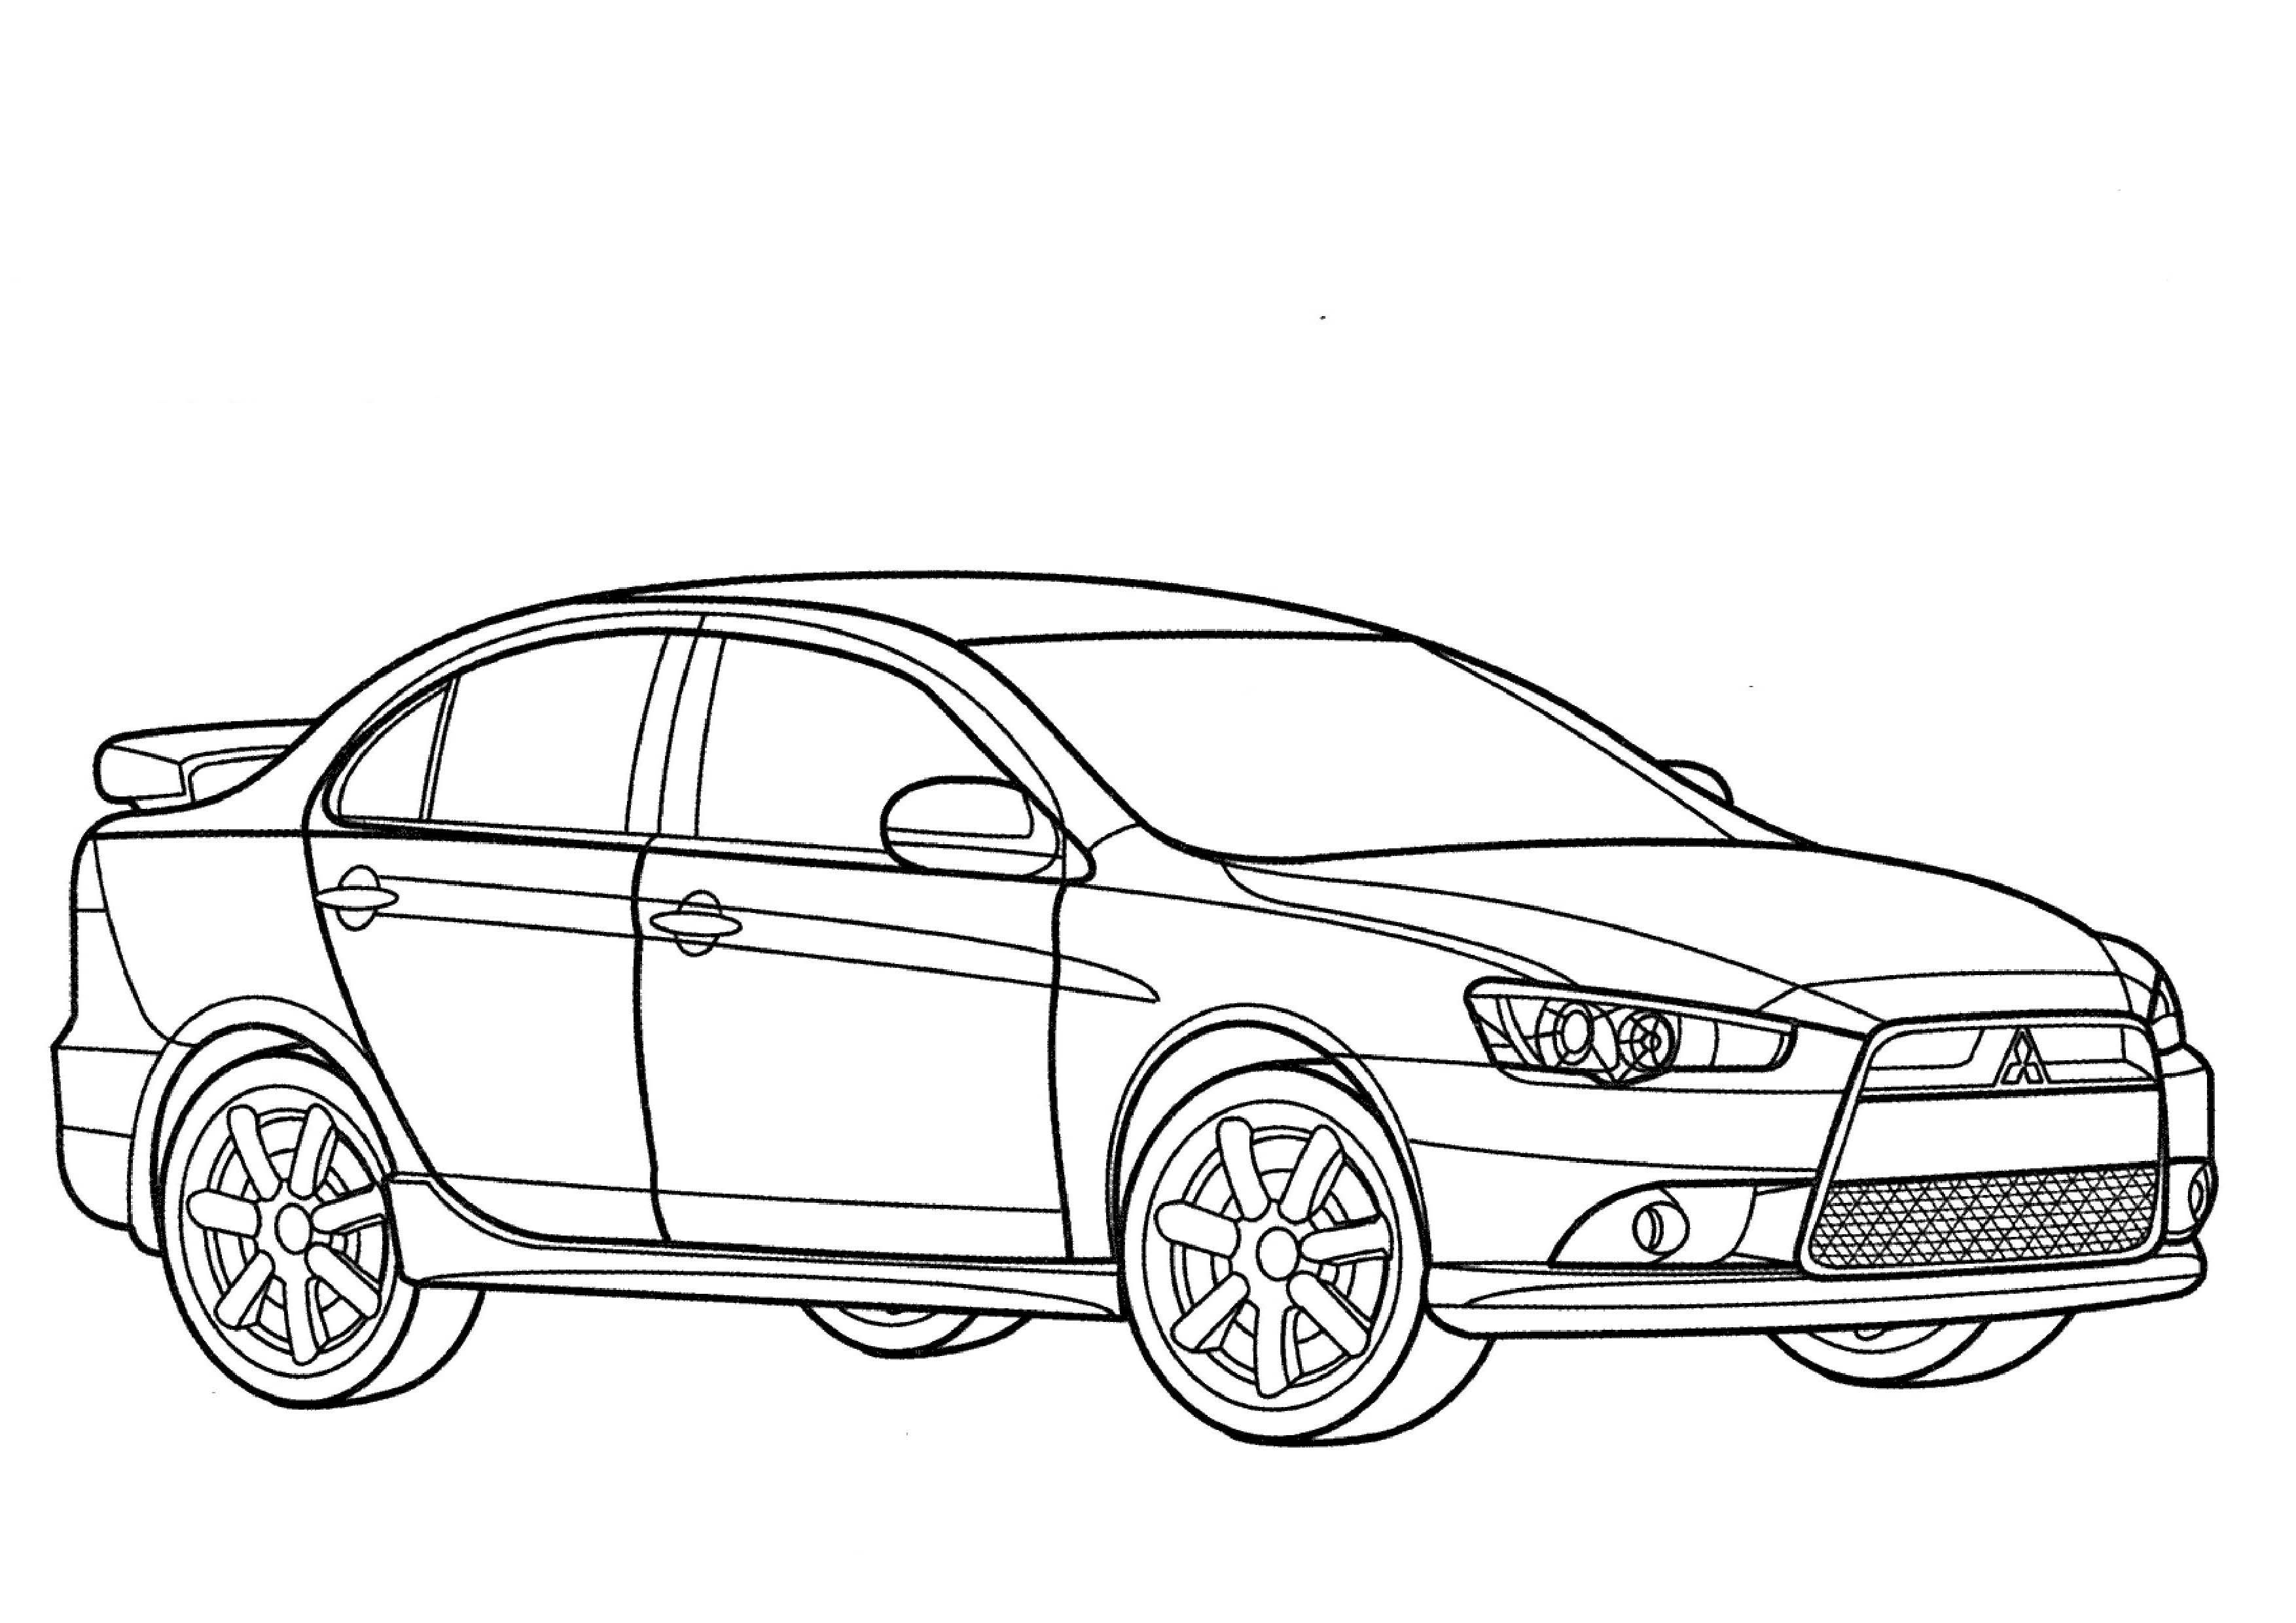 Mitsubishi Lancer Car Drawings Jdm Coloring Pages Evolution Colouring Of Cars Printable Books